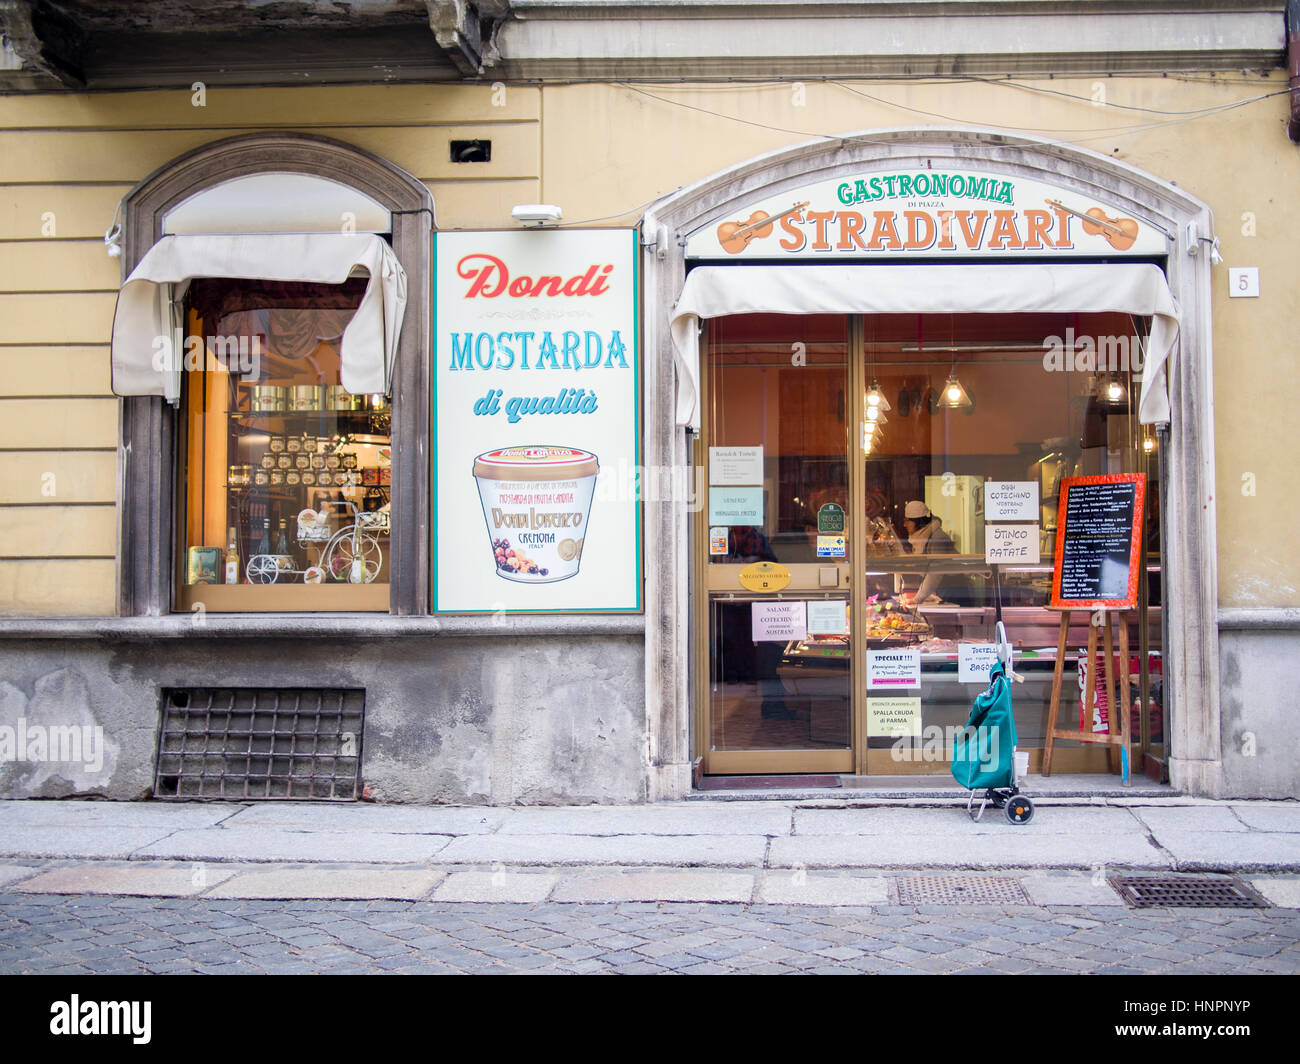 Gastronomia, local food store, Cremona, Italy - Stock Image